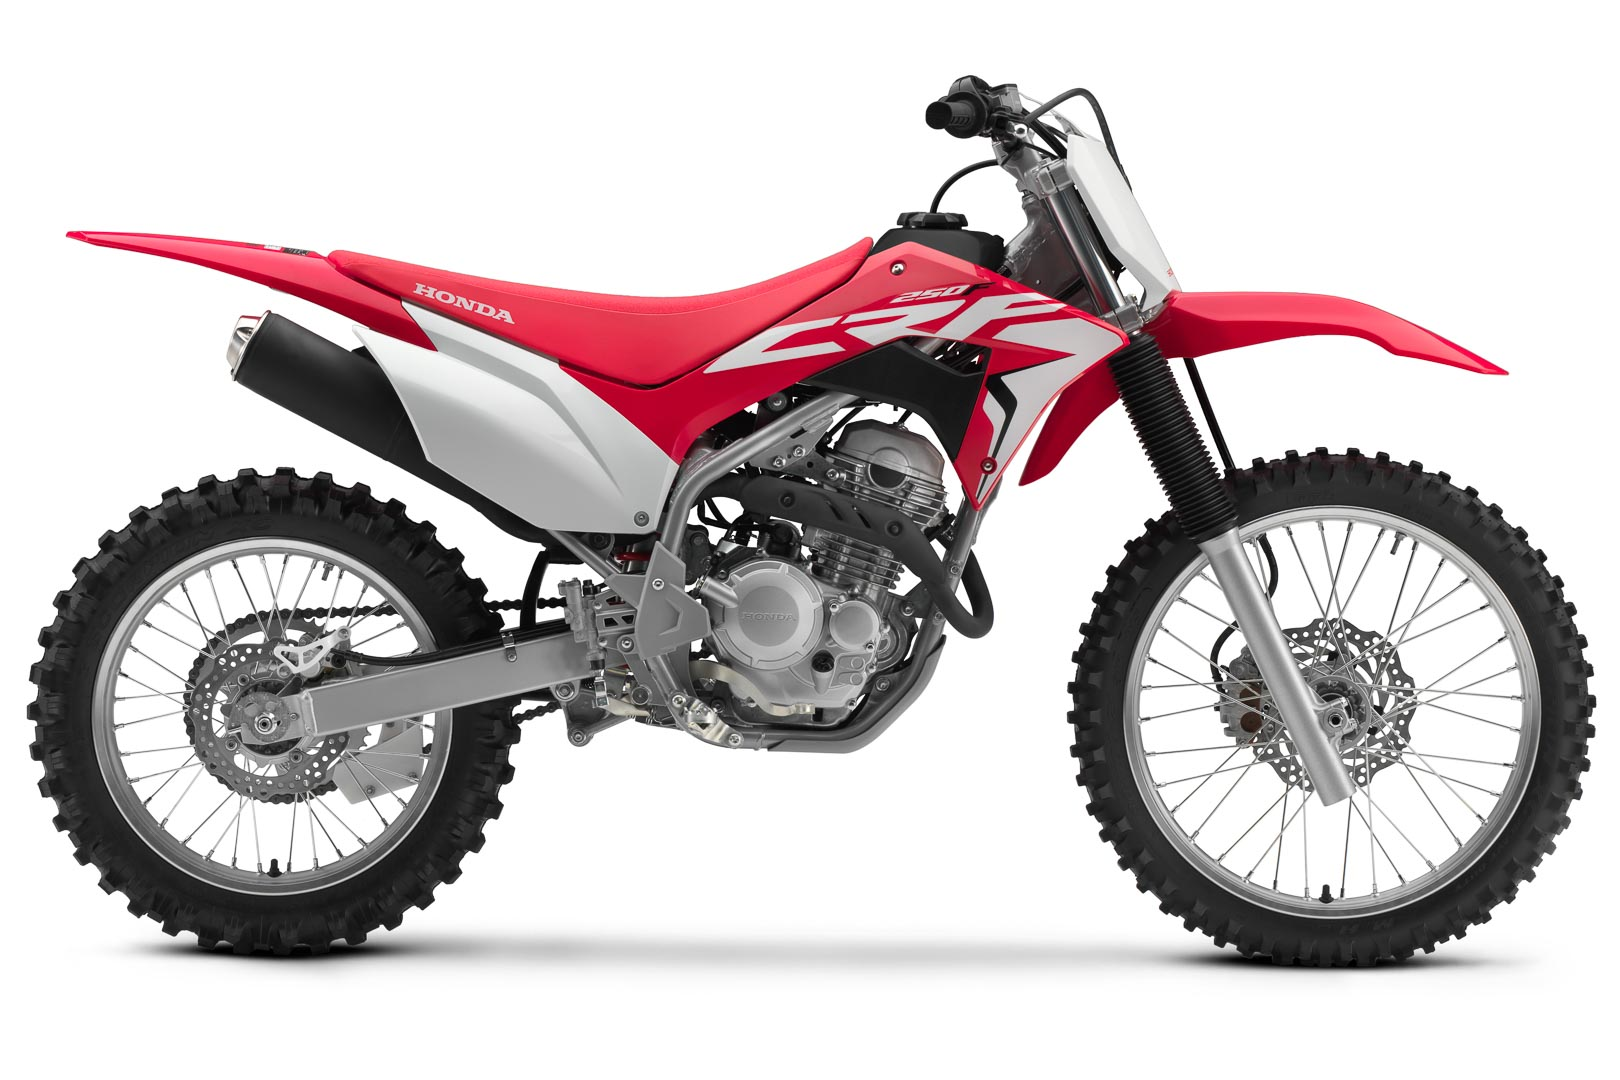 2021 Honda Trail Bike Lineup First Look: CRF250F